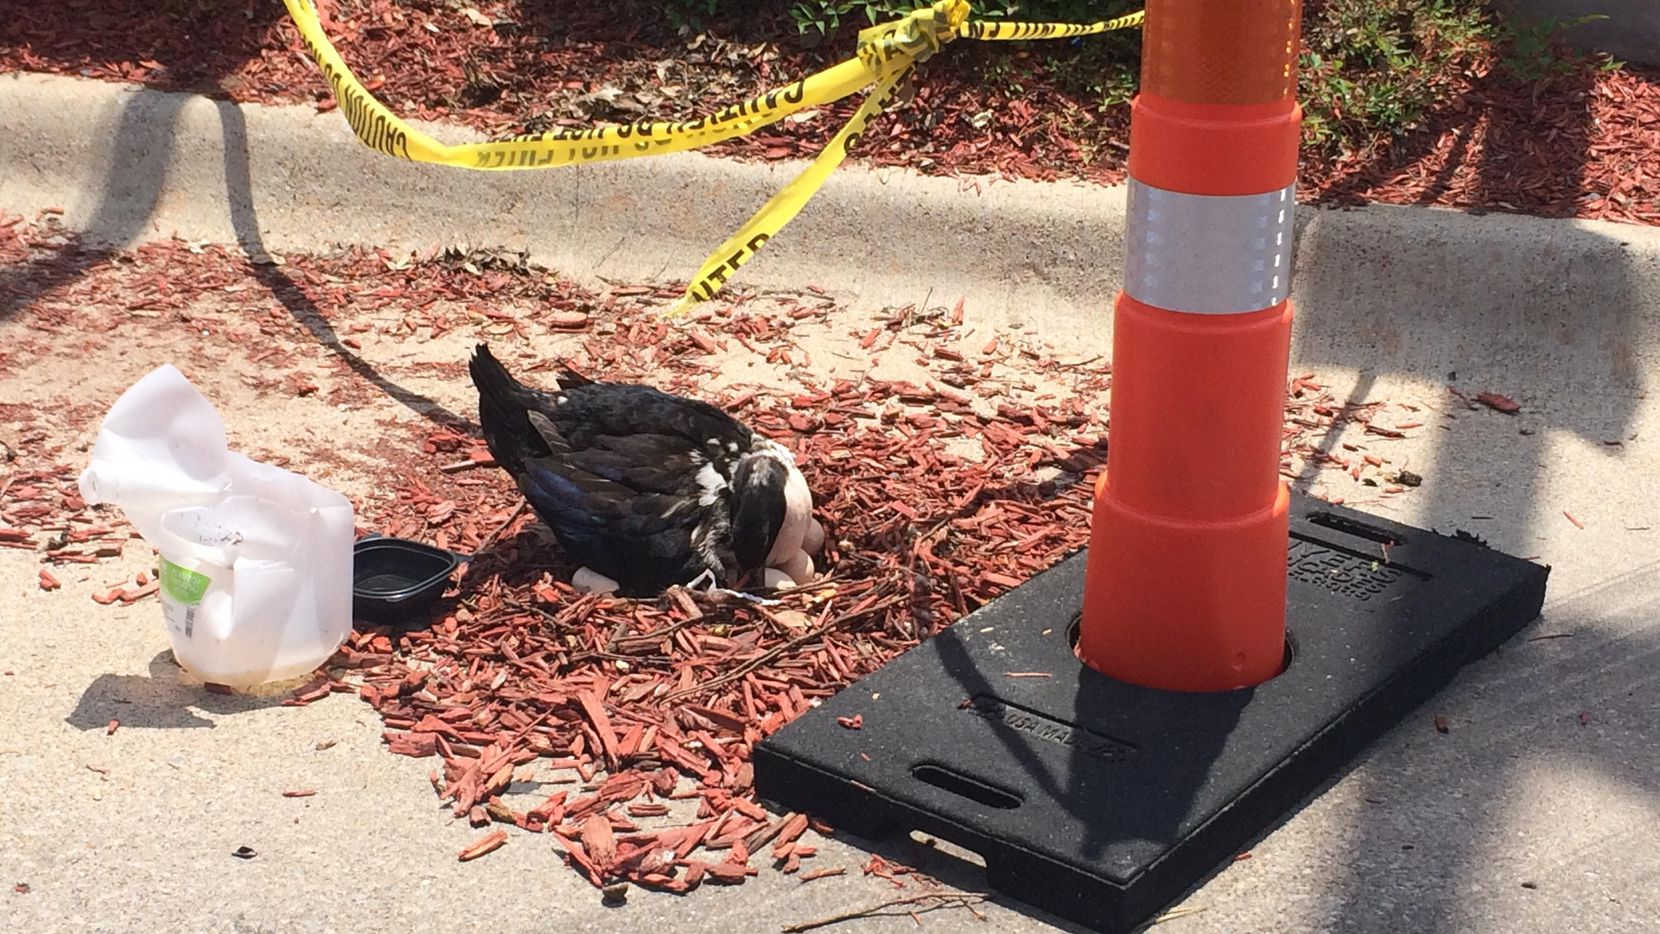 A mother duck rearranges her eggs outside the Whataburger near the intersection of Lemmon Avenue and Northwest Highway. (Photo courtesy of Kristi Robeson)